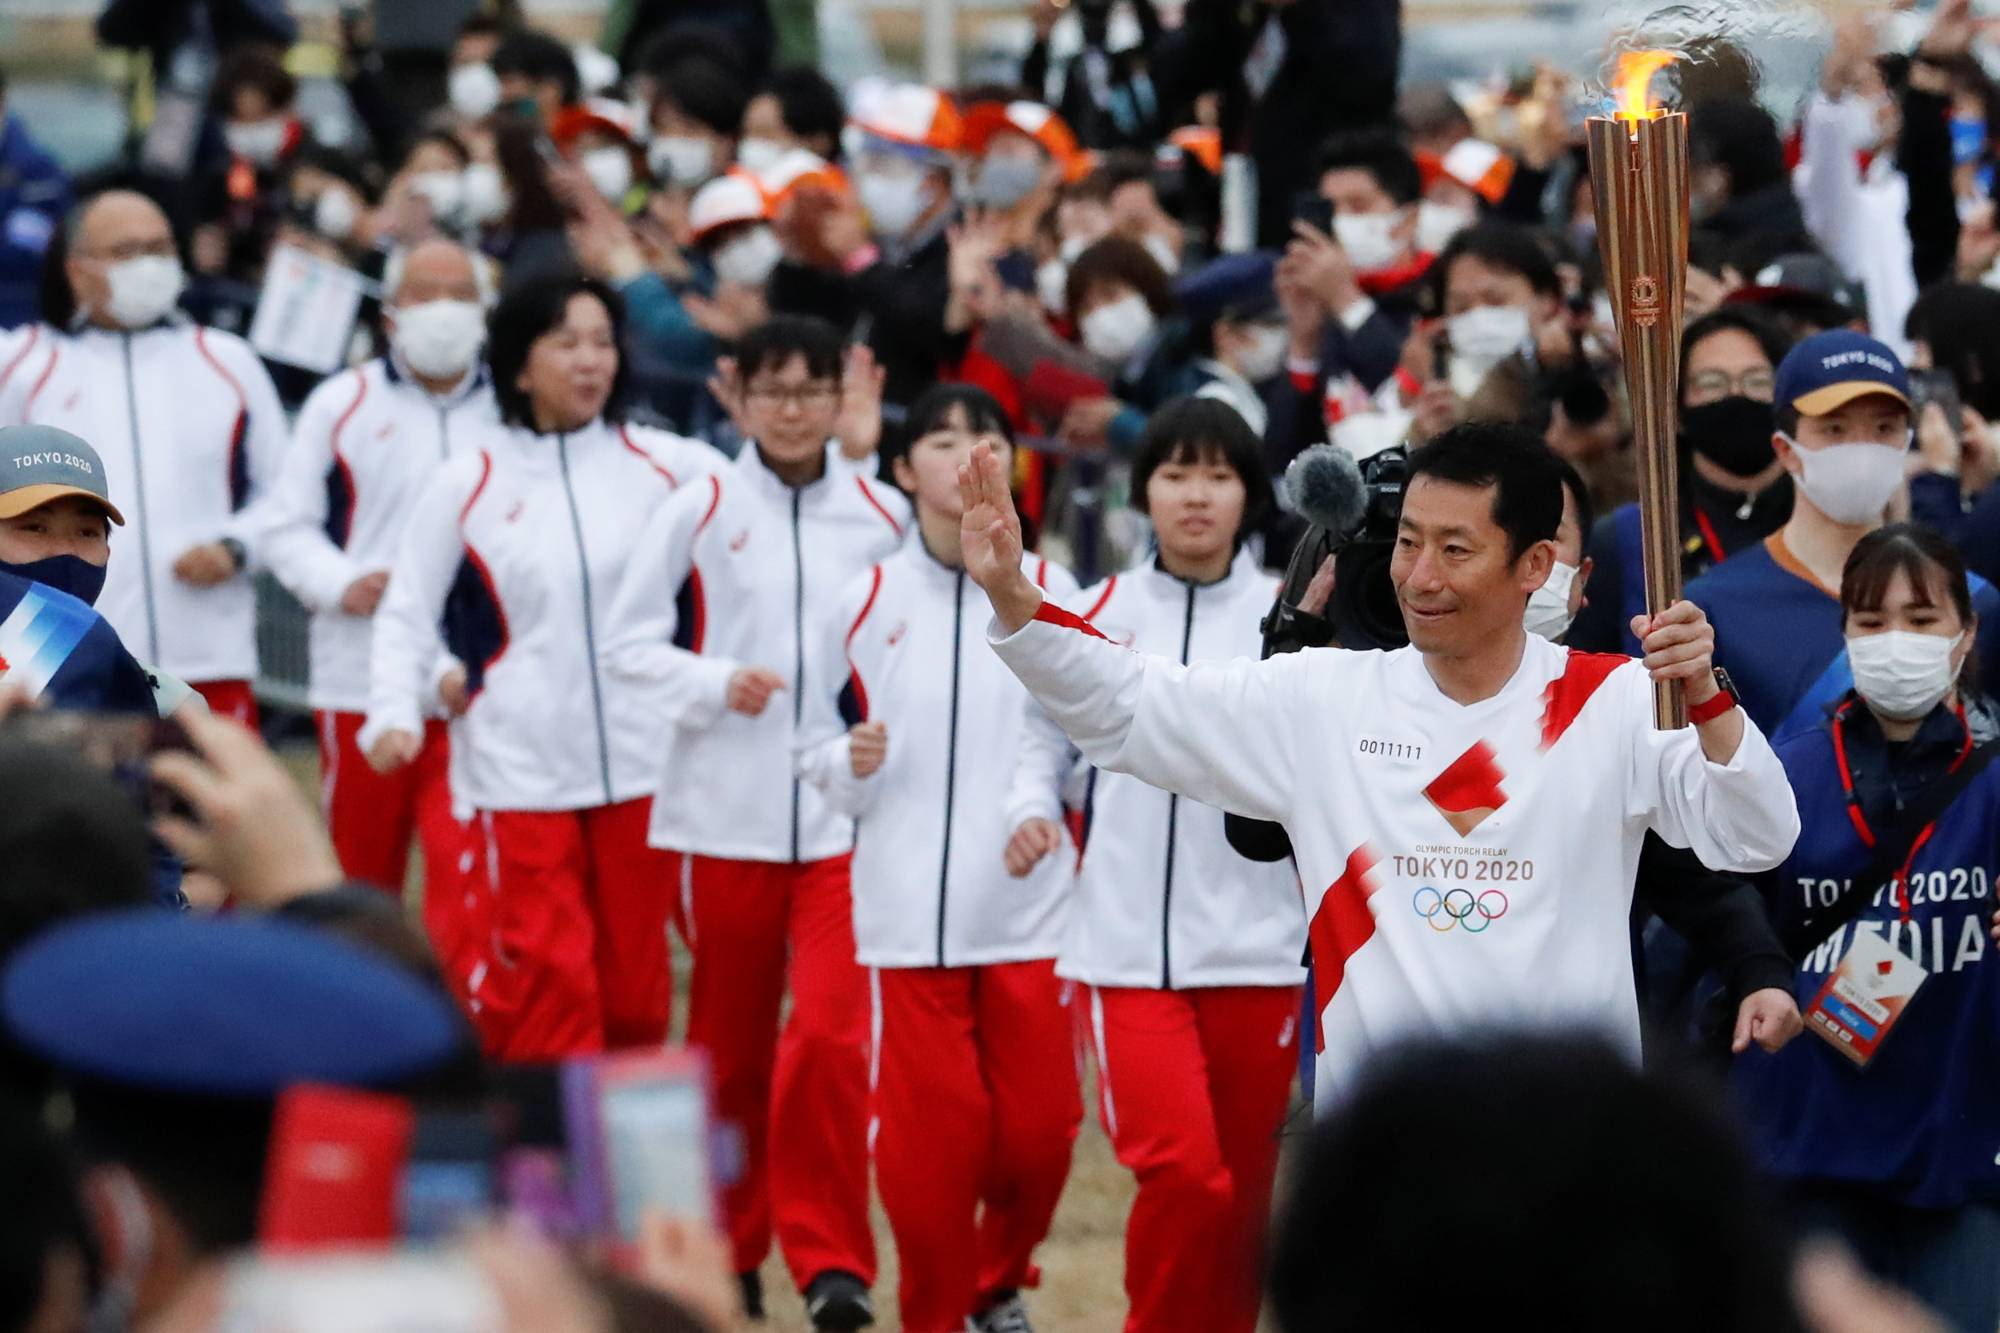 Japanese aerobatics pilot Yoshihide Muroya carries the Olympic torch at Hibarigahara Festival Site in Minamisoma, Fukushima Prefecture, during the last leg of the first day of the Tokyo 2020 Olympic torch relay last month. | REUTERS